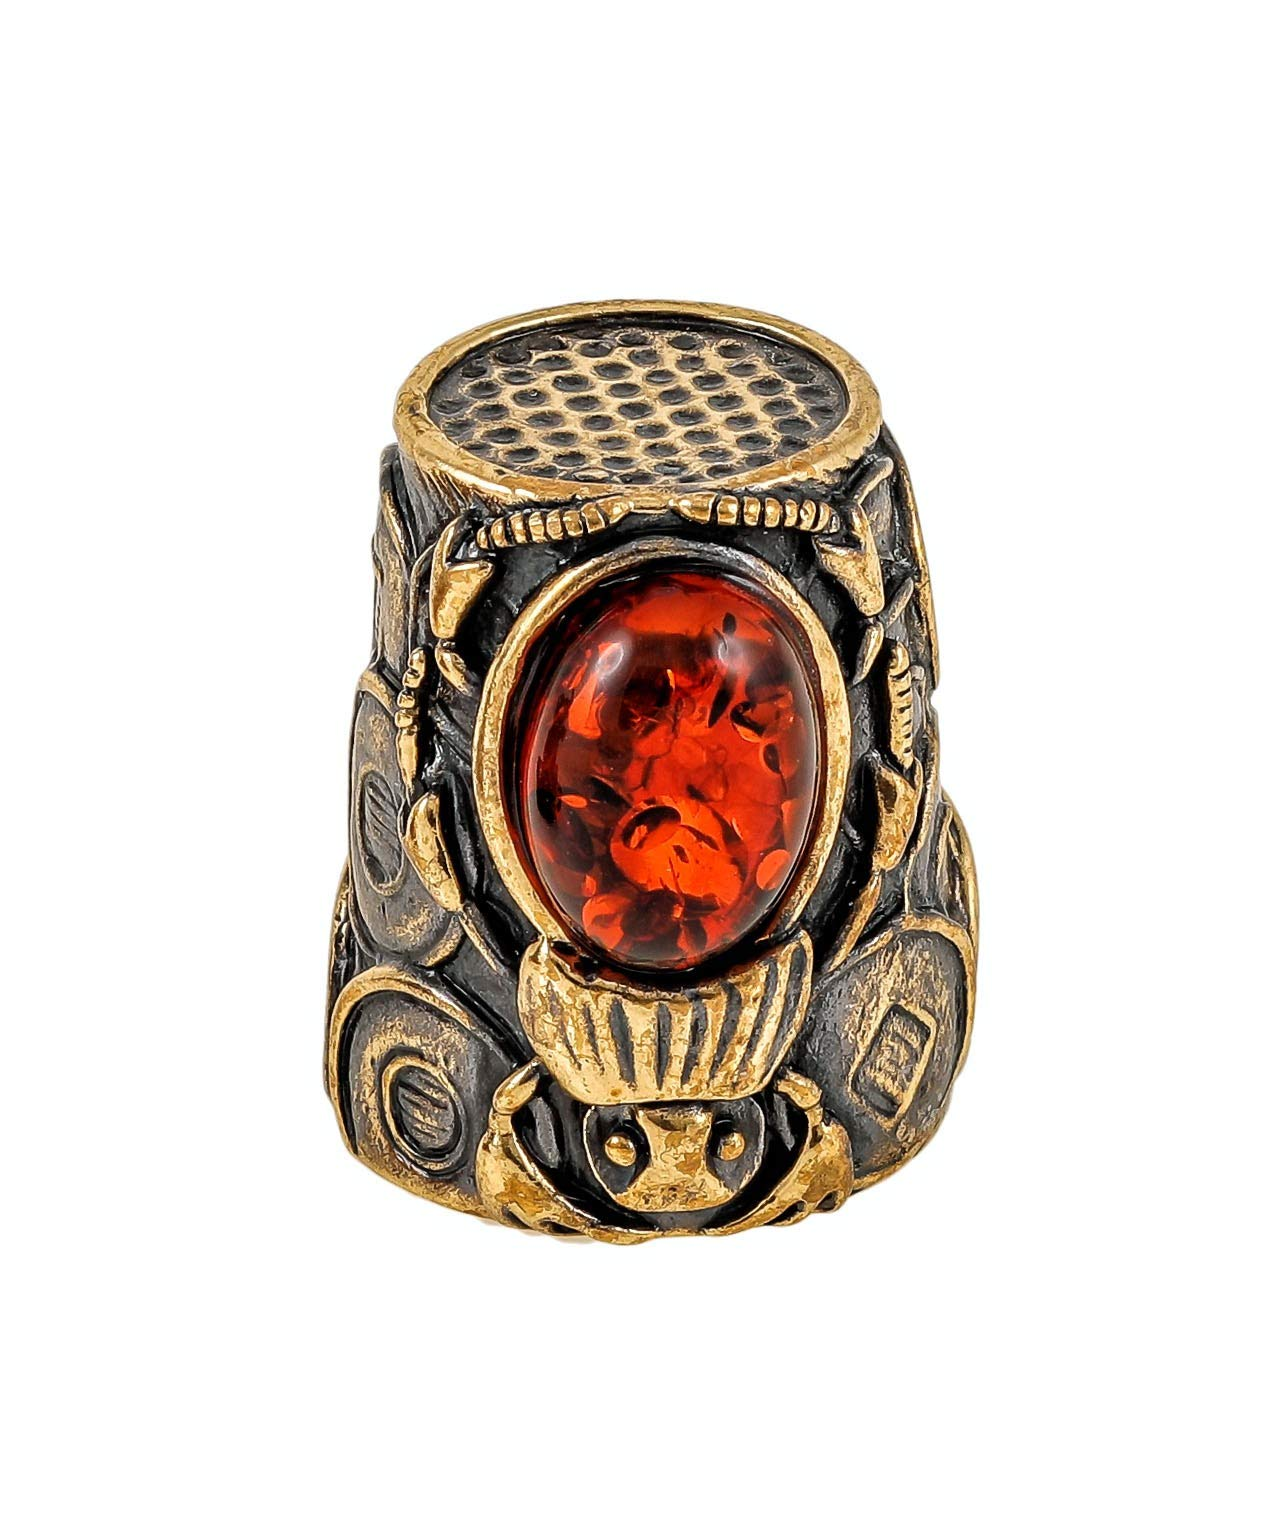 Amber and Brass Collectible Thimble (Egyptian Beetle) Decorative Souvenir Thimbles. Antique Designs from Kaliningrad, Russia.Packed in a Beautiful Siberian Birch Bark Gift Box(Random Selection) by Brass and Amber Art